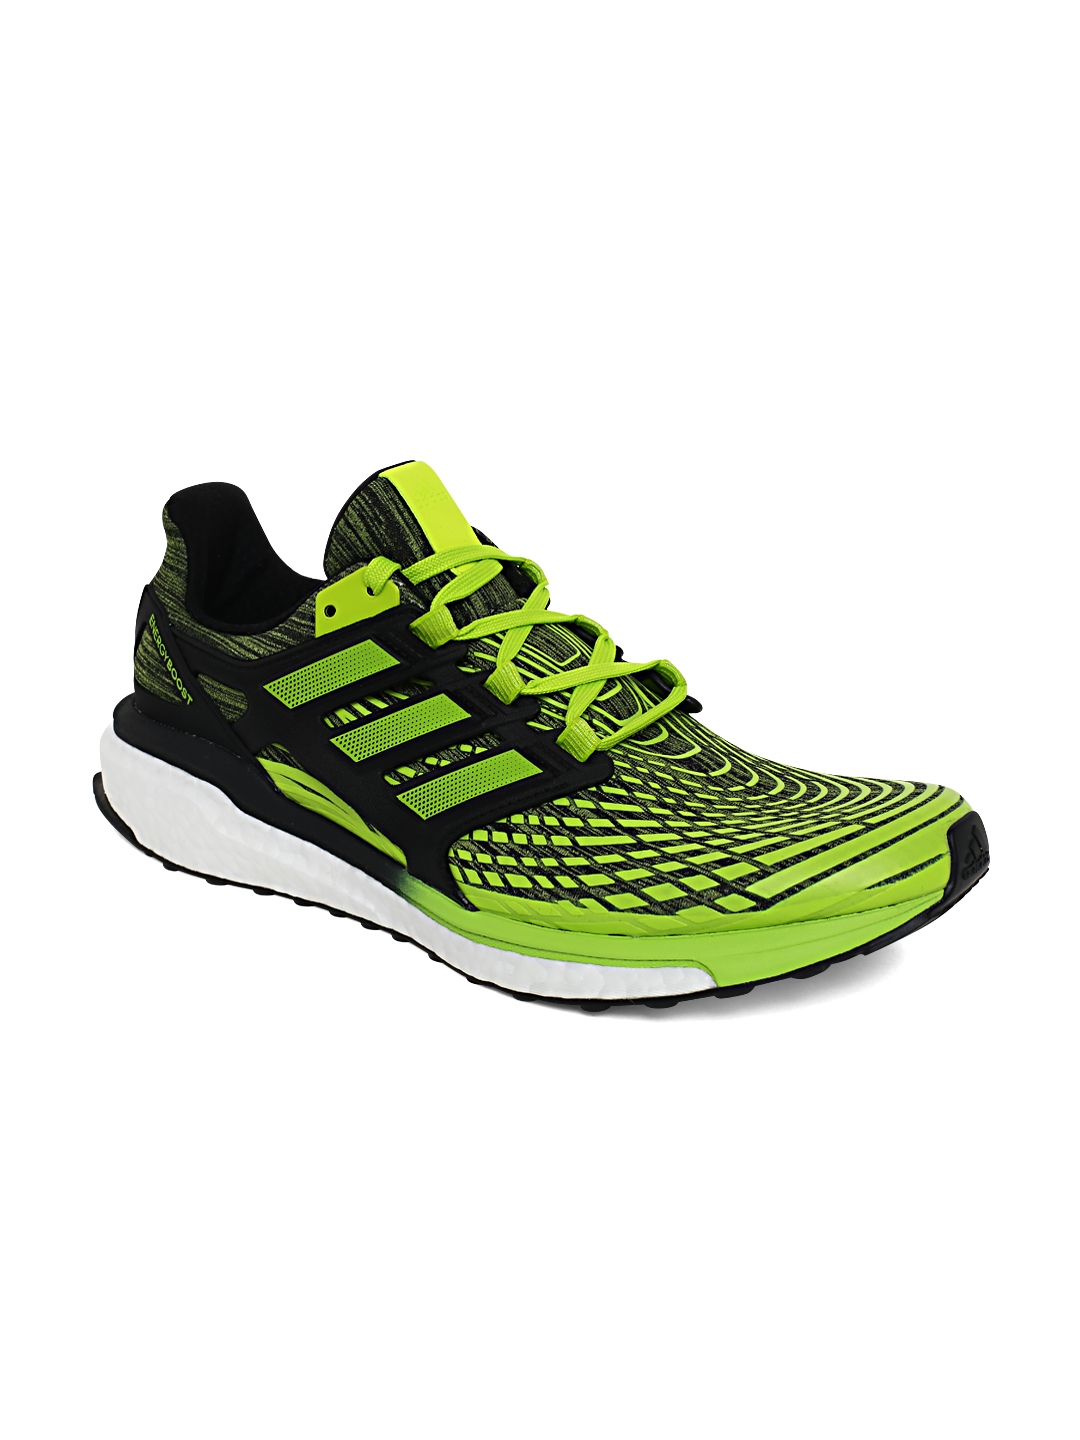 b31255b4c2c0 Buy ADIDAS Men Black   Neon Green Energy Boost Running Shoes ...